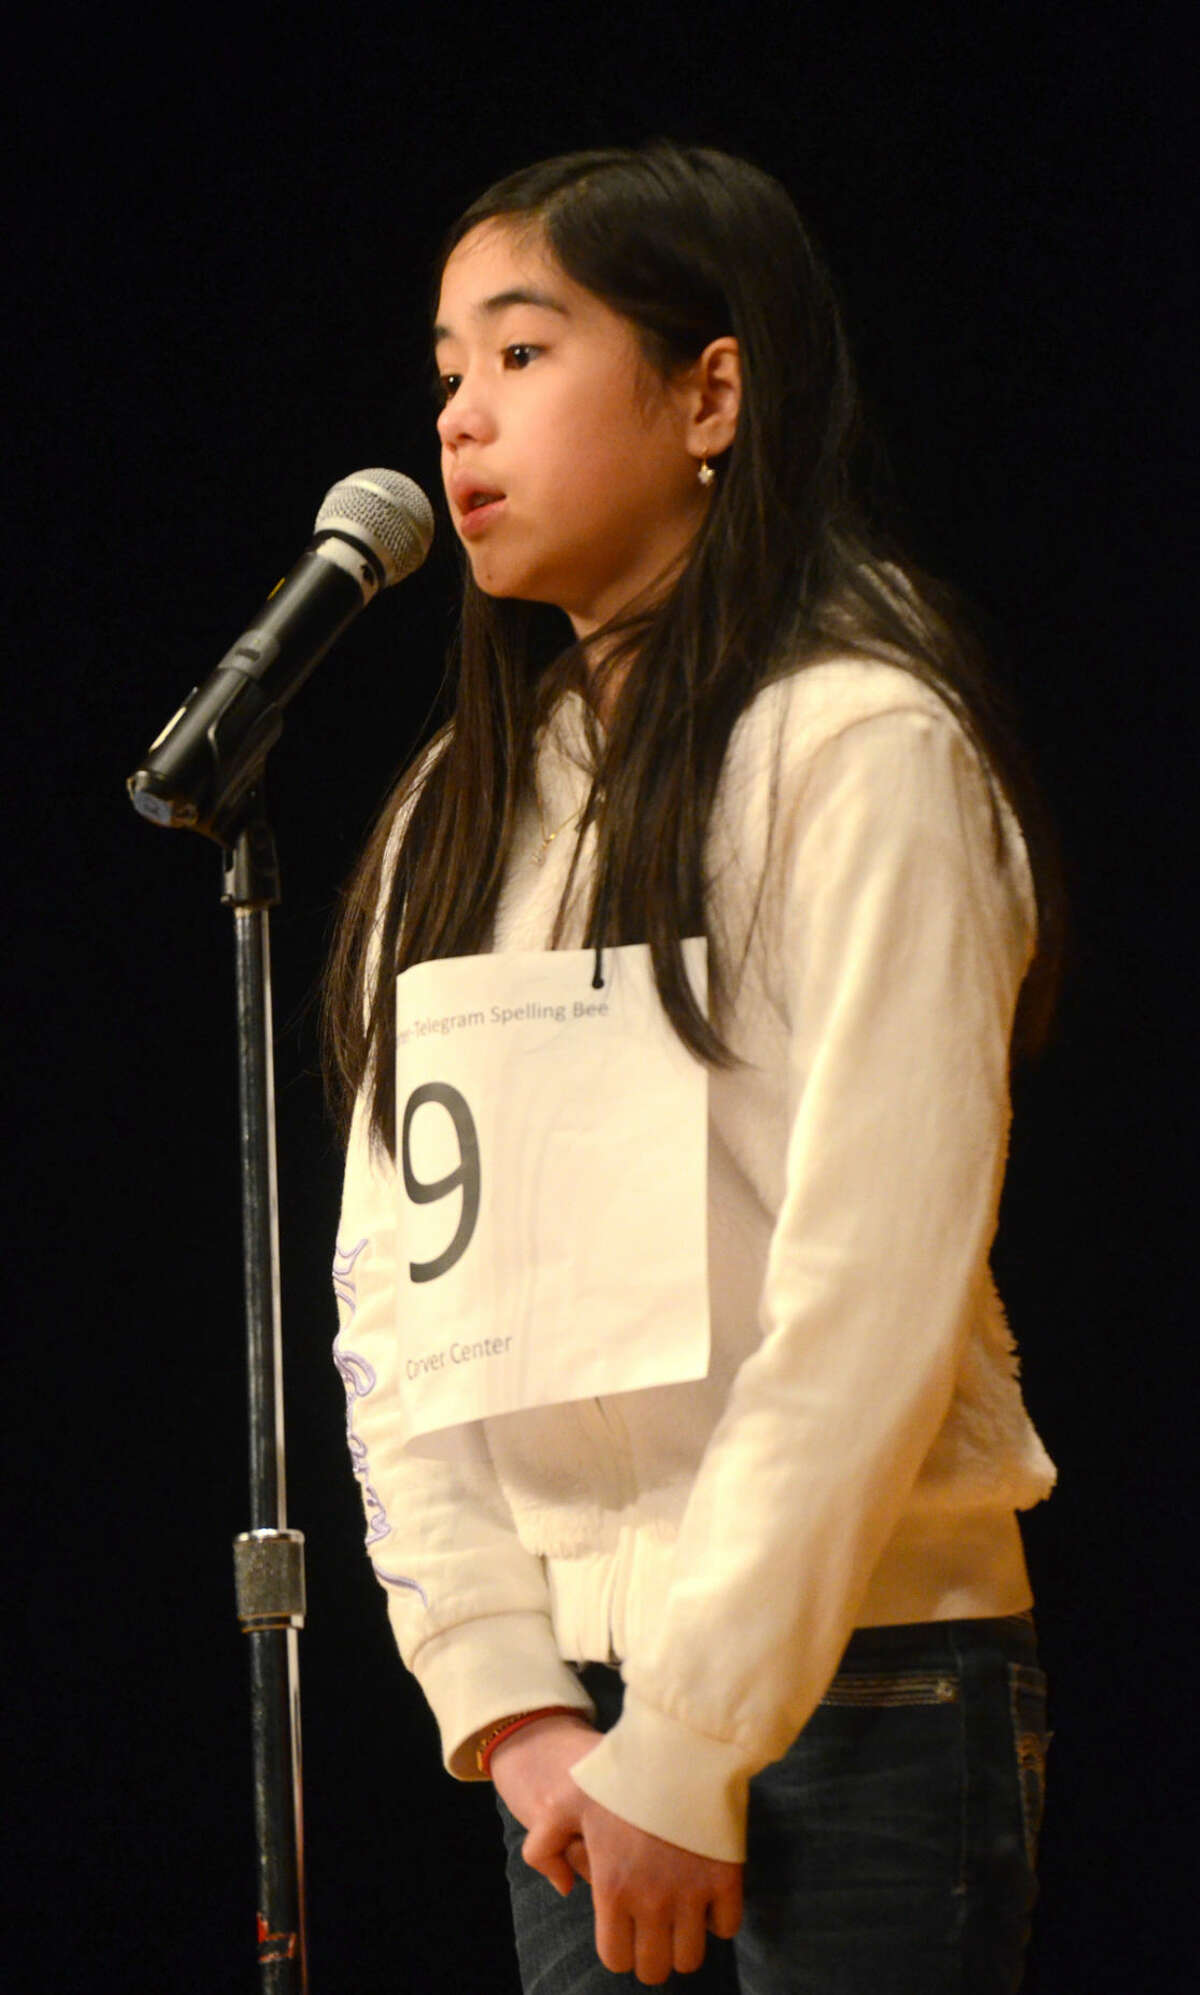 Anna Ngo of Carver competes in the Midland Reporter-Telegram regional spelling bee Saturday, March 21, 2015, in the Allison Fine Arts building on the campus of Midland College. James Durbin/Reporter-Telegram